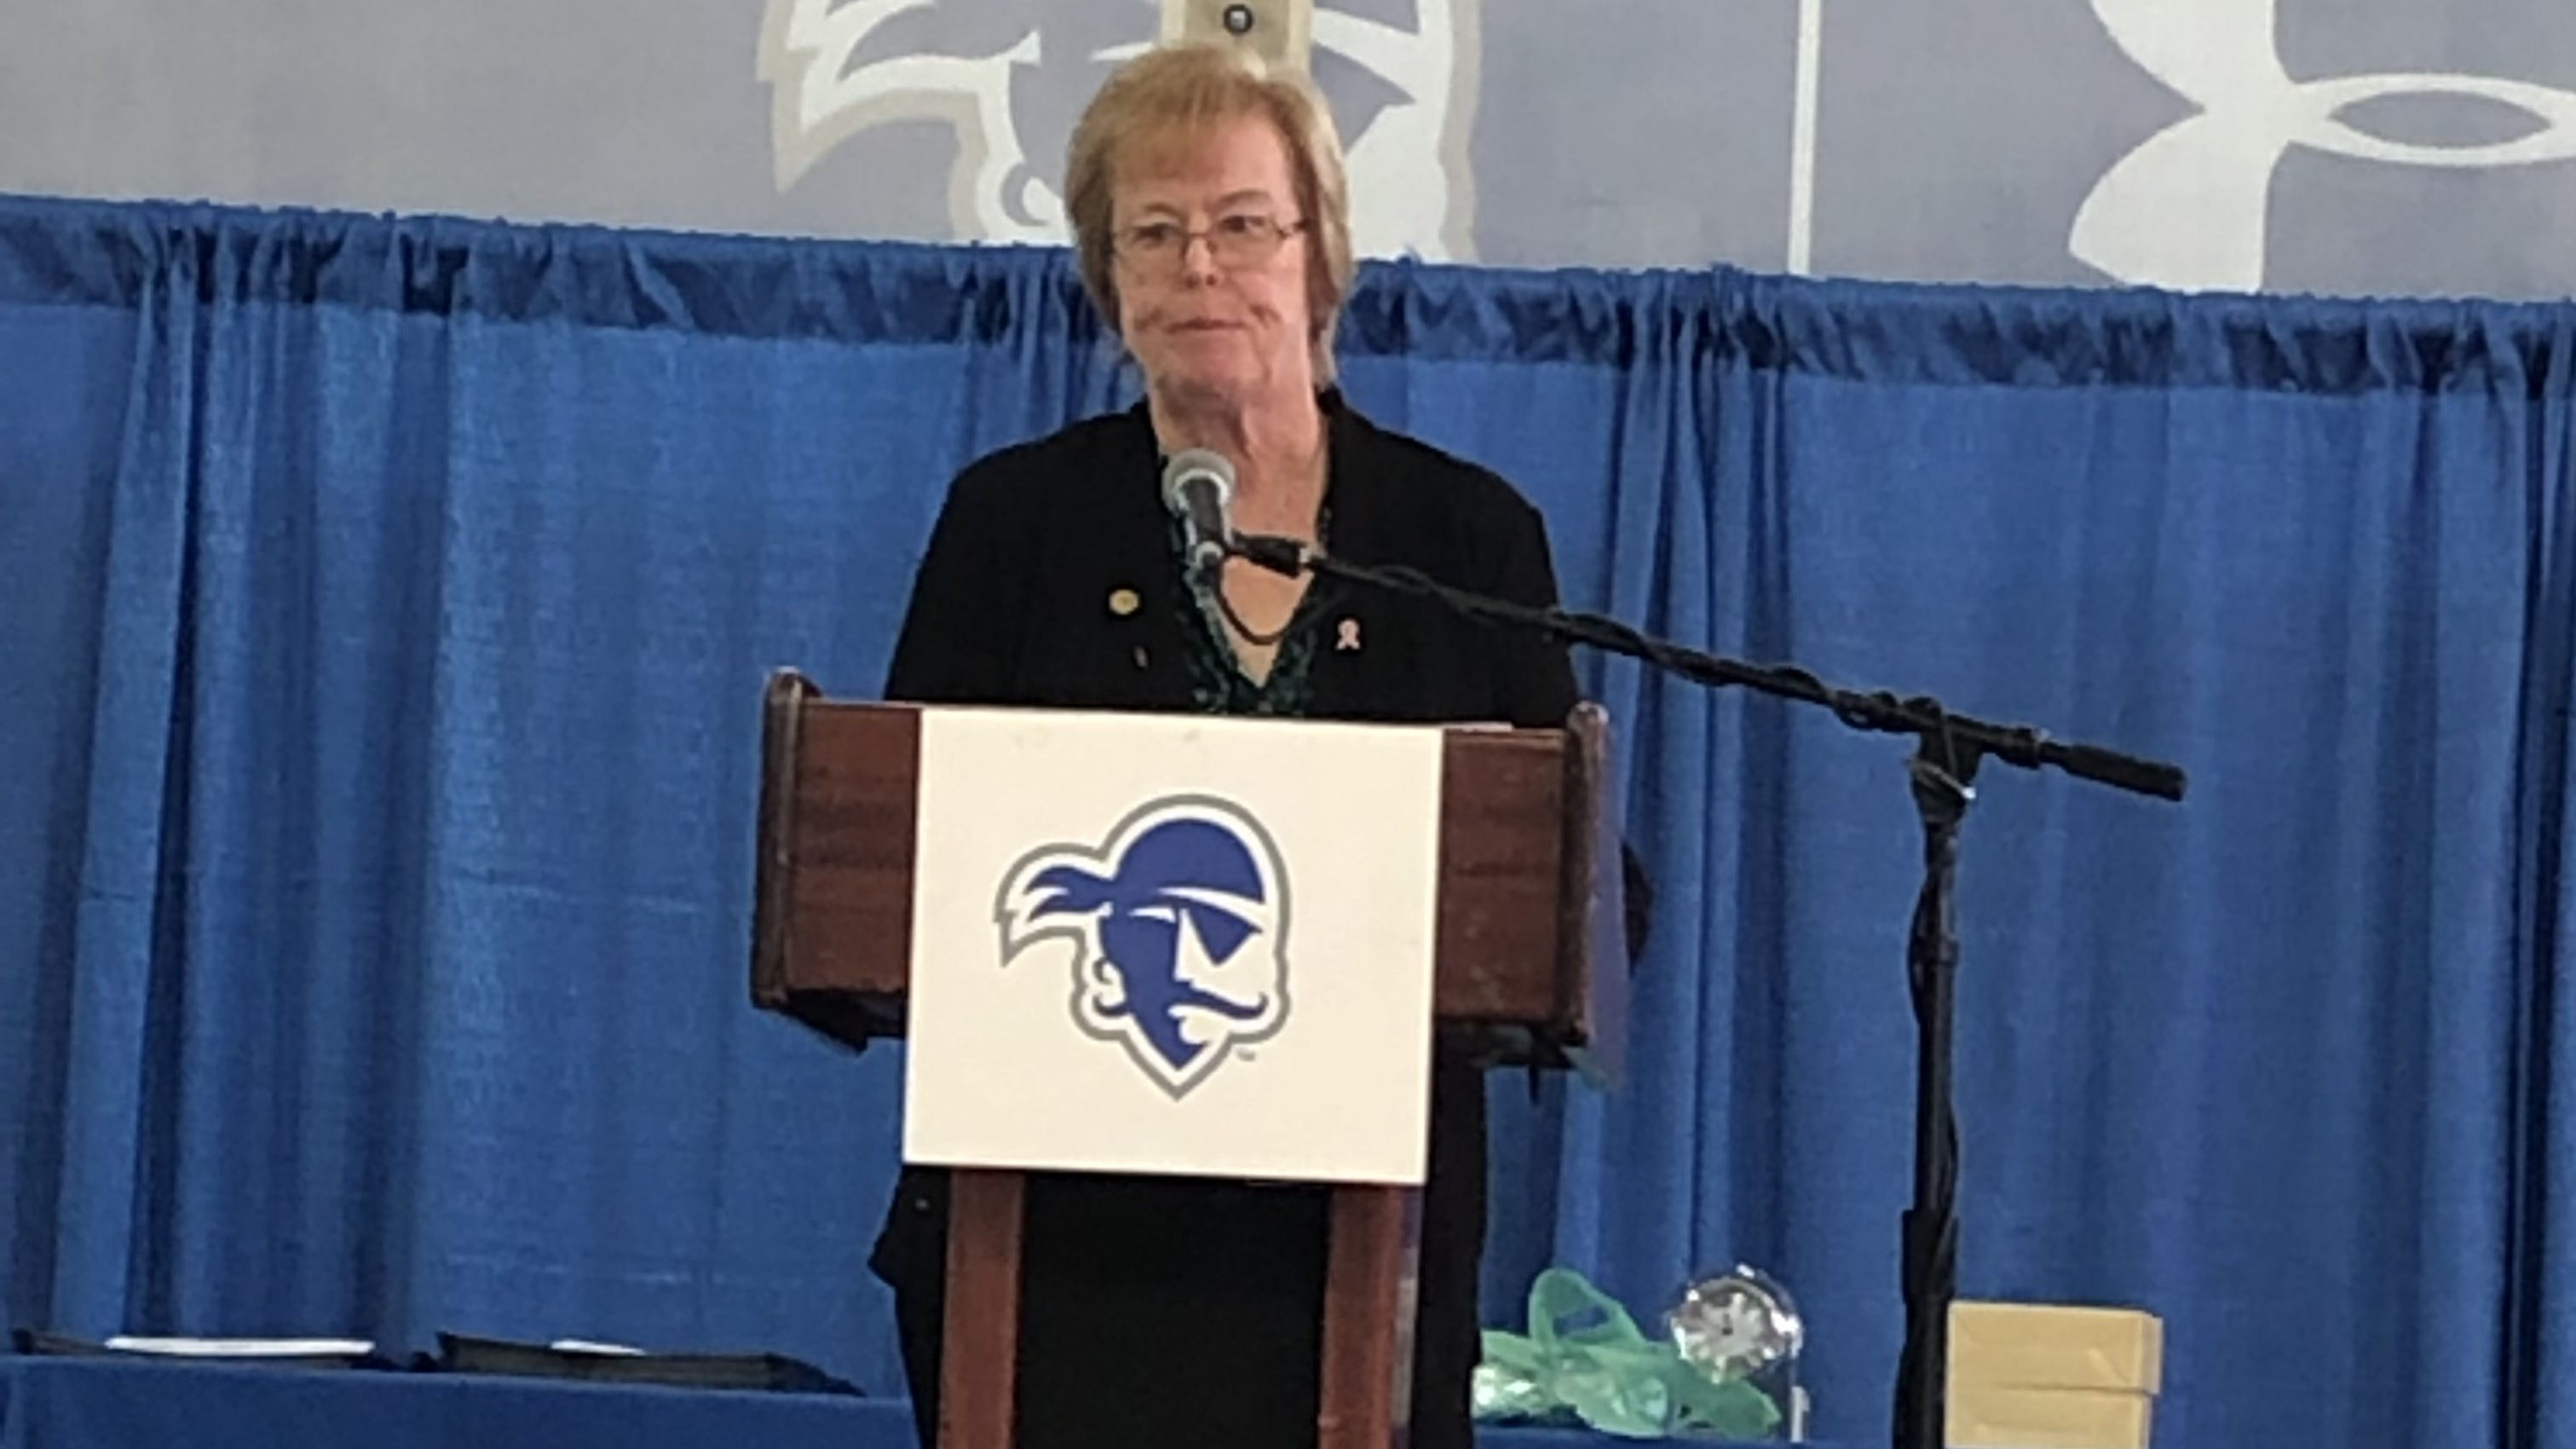 Pioneering South Brunswick athletic director Elaine McGrath was an honor award recipient at New Jersey's Girls & Women in Sports Day luncheon.